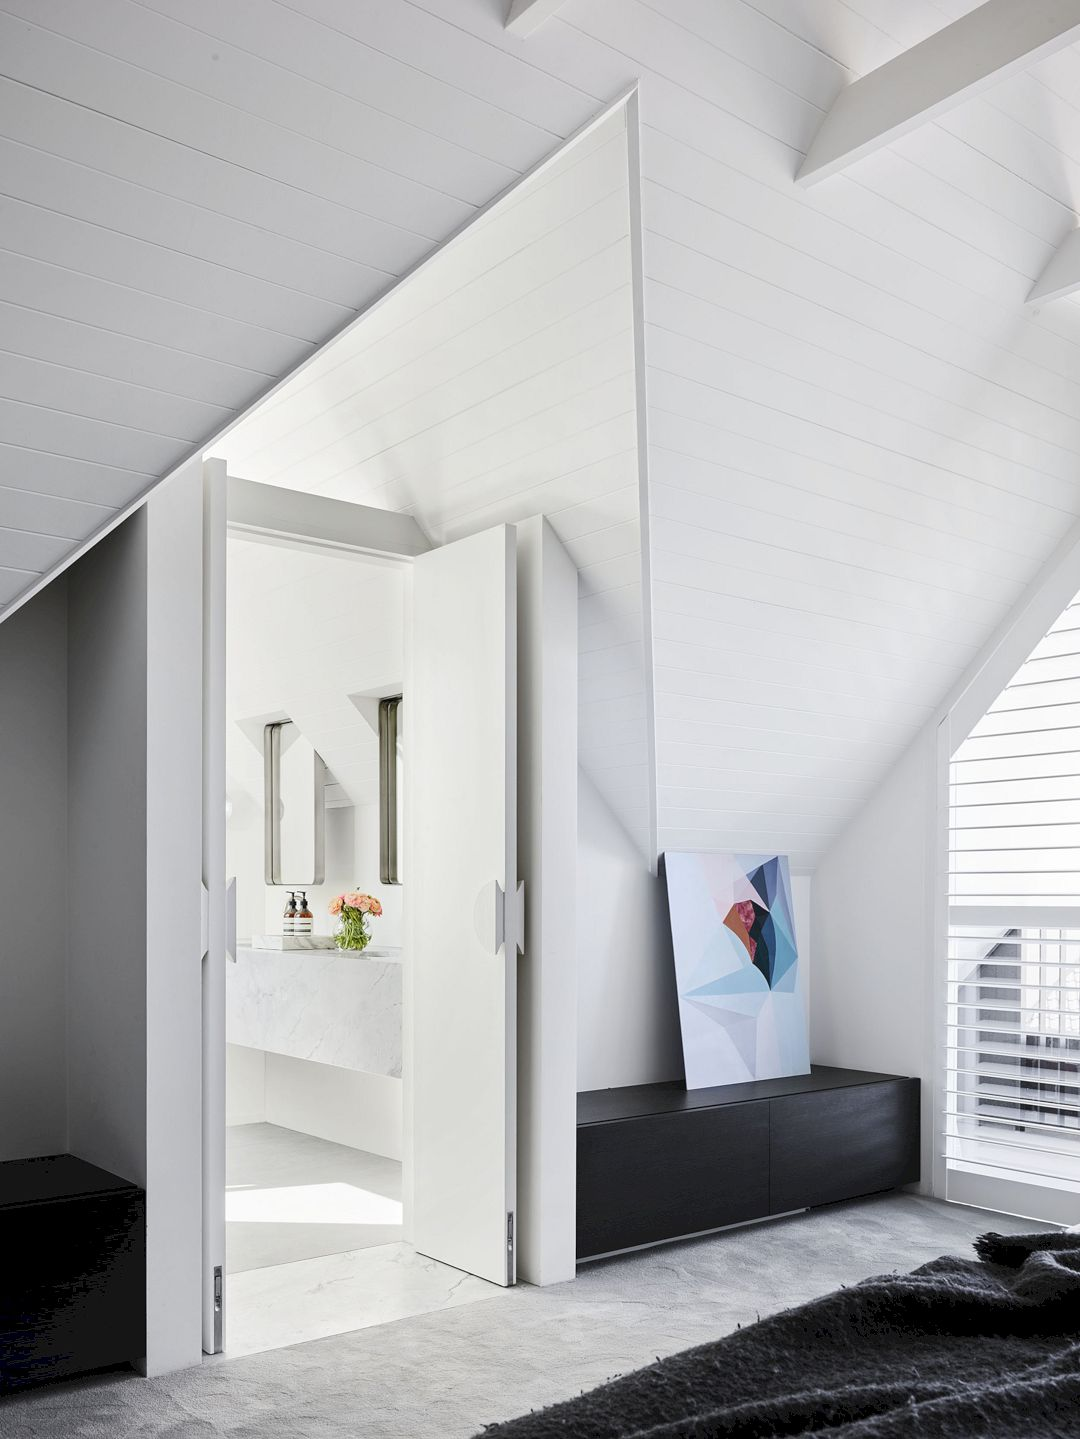 Attic House By Madeleine Blanchfield Architects 7